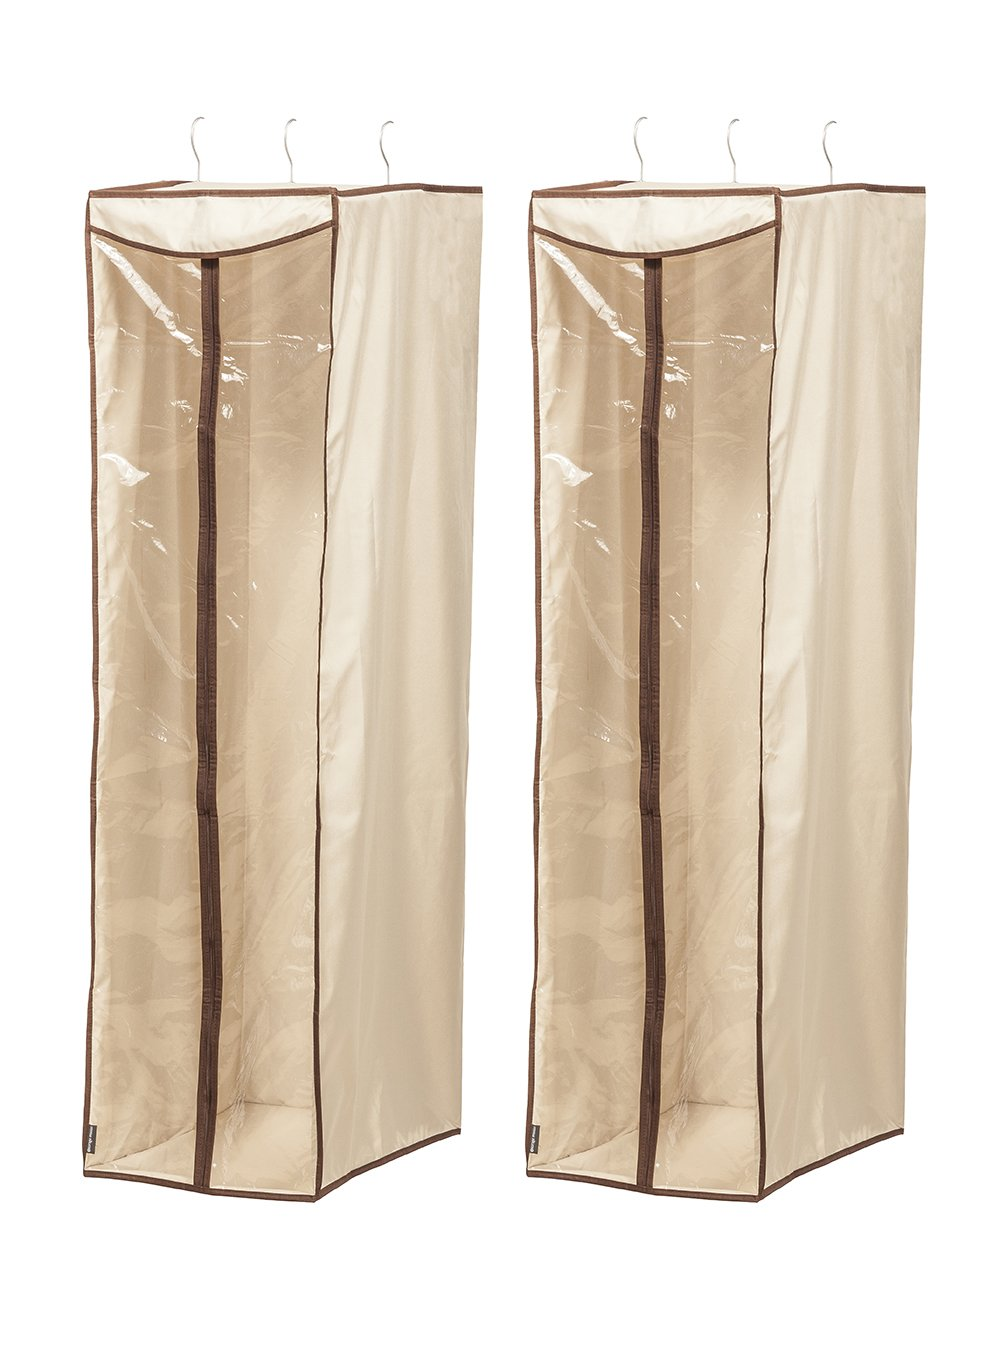 STORAGE MANIAC Hanging Garment Bag Cover with Visible Window, Garment Clothing Organizer, 2-Pack